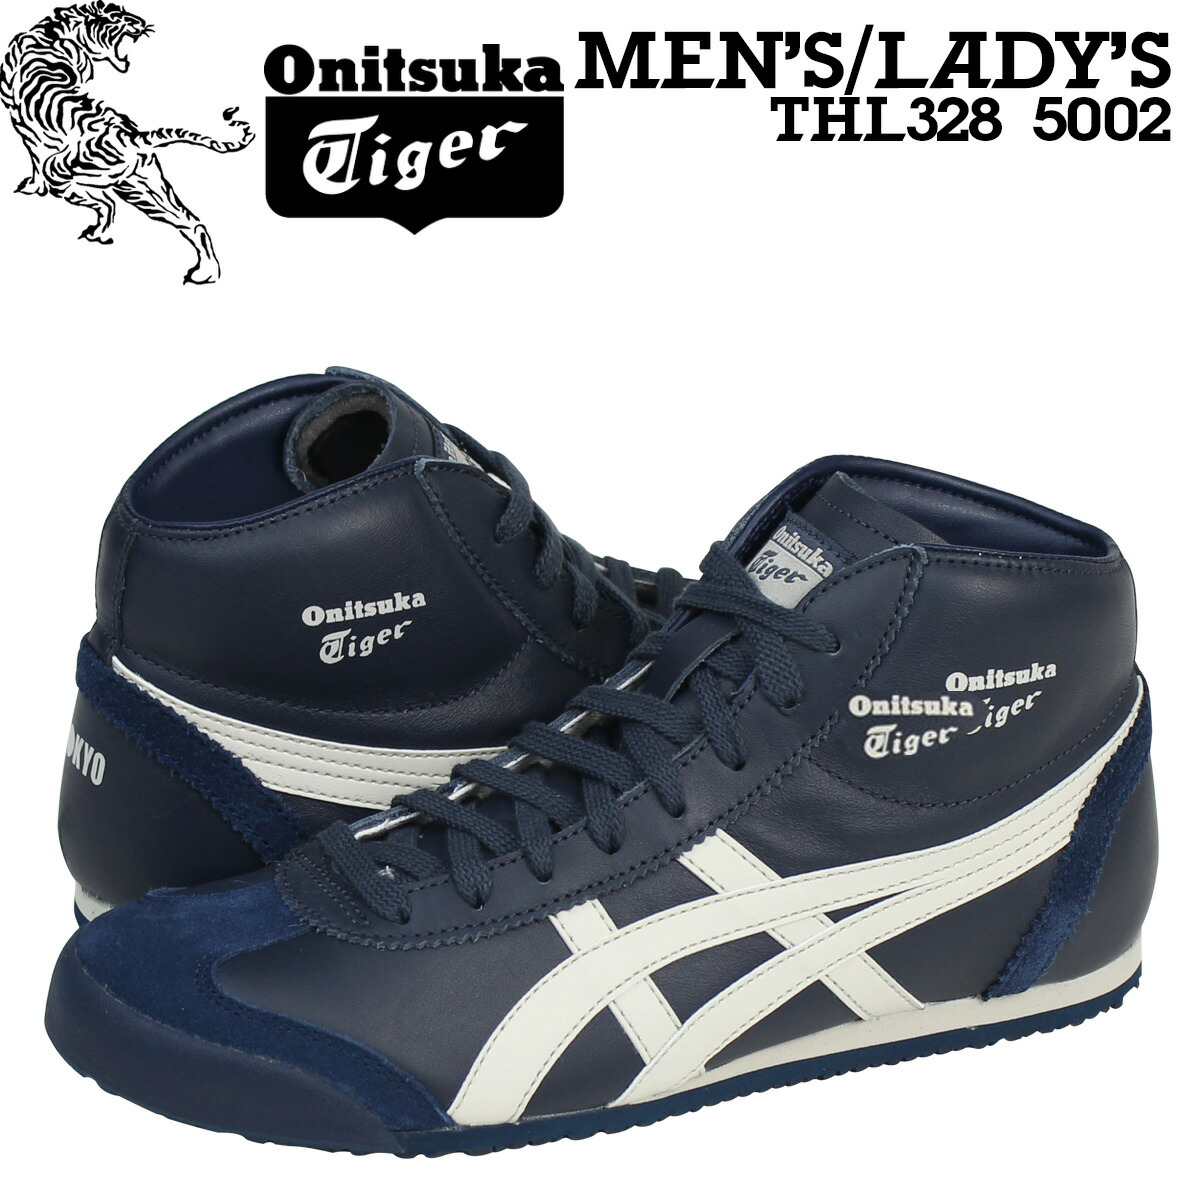 onitsuka tiger mid runner mexico